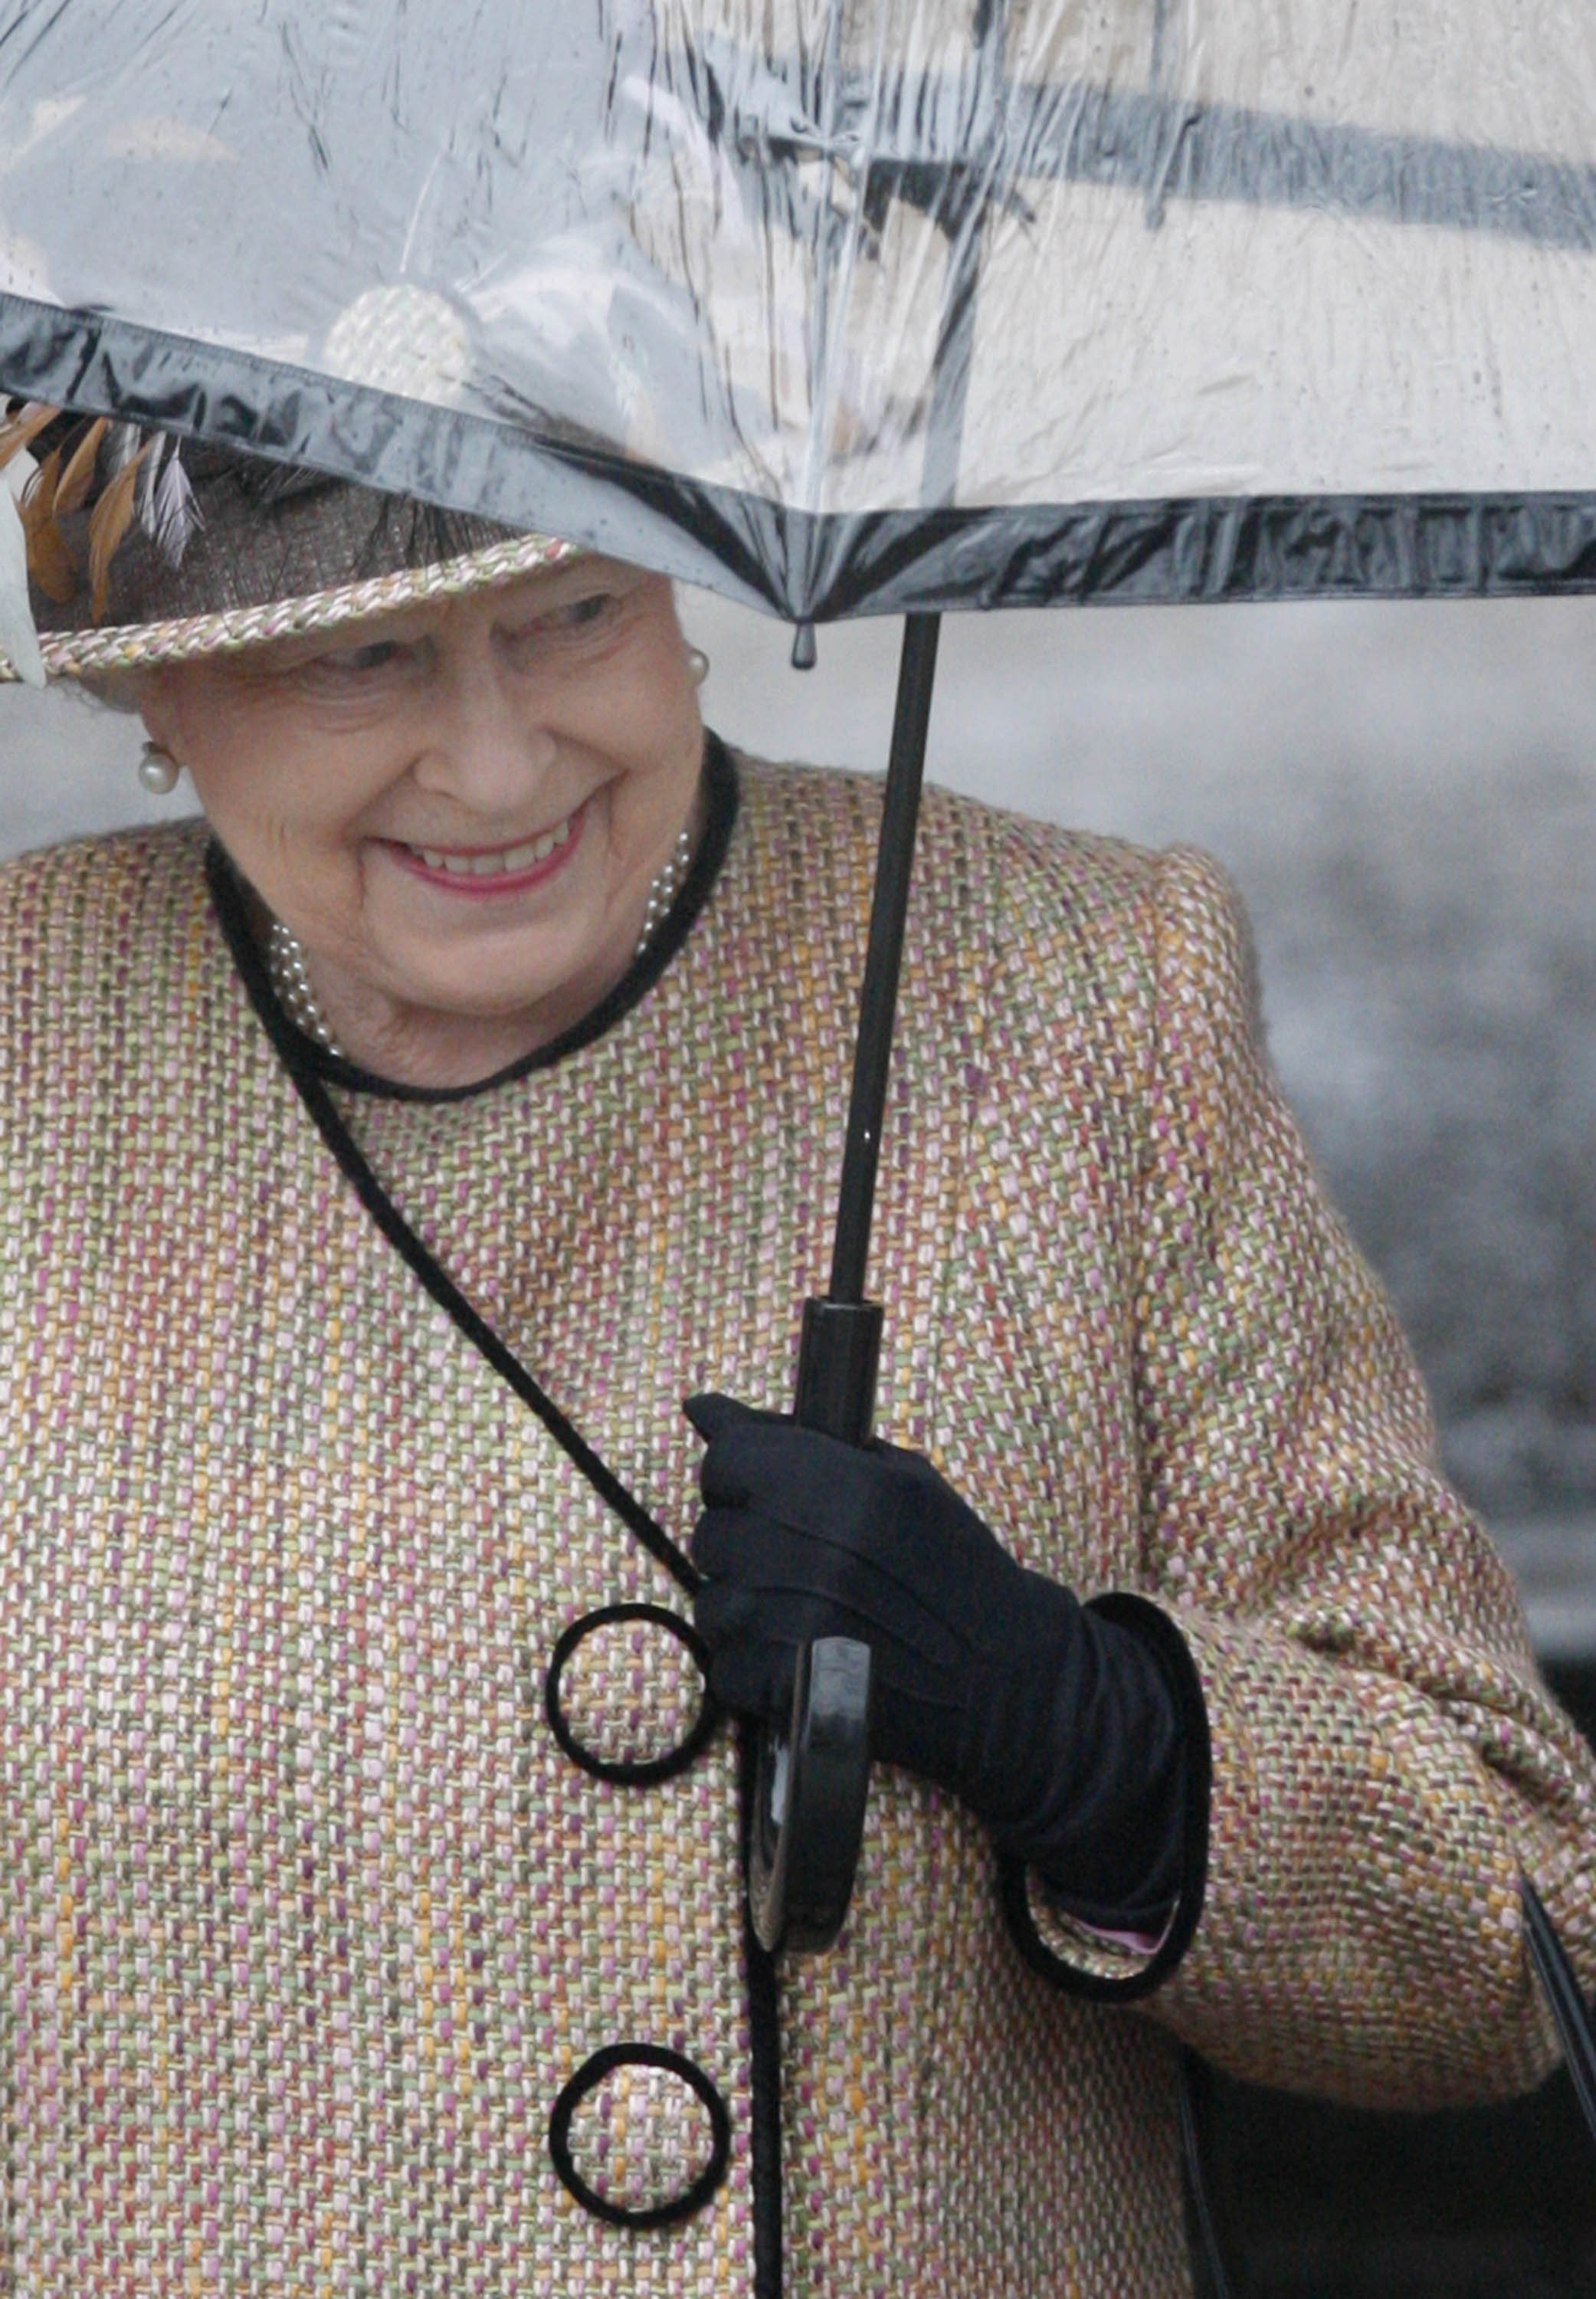 Britain's Queen Elizabeth attends the Christmas service at Sandringham Church in Norfolk, eastern England yesterday.